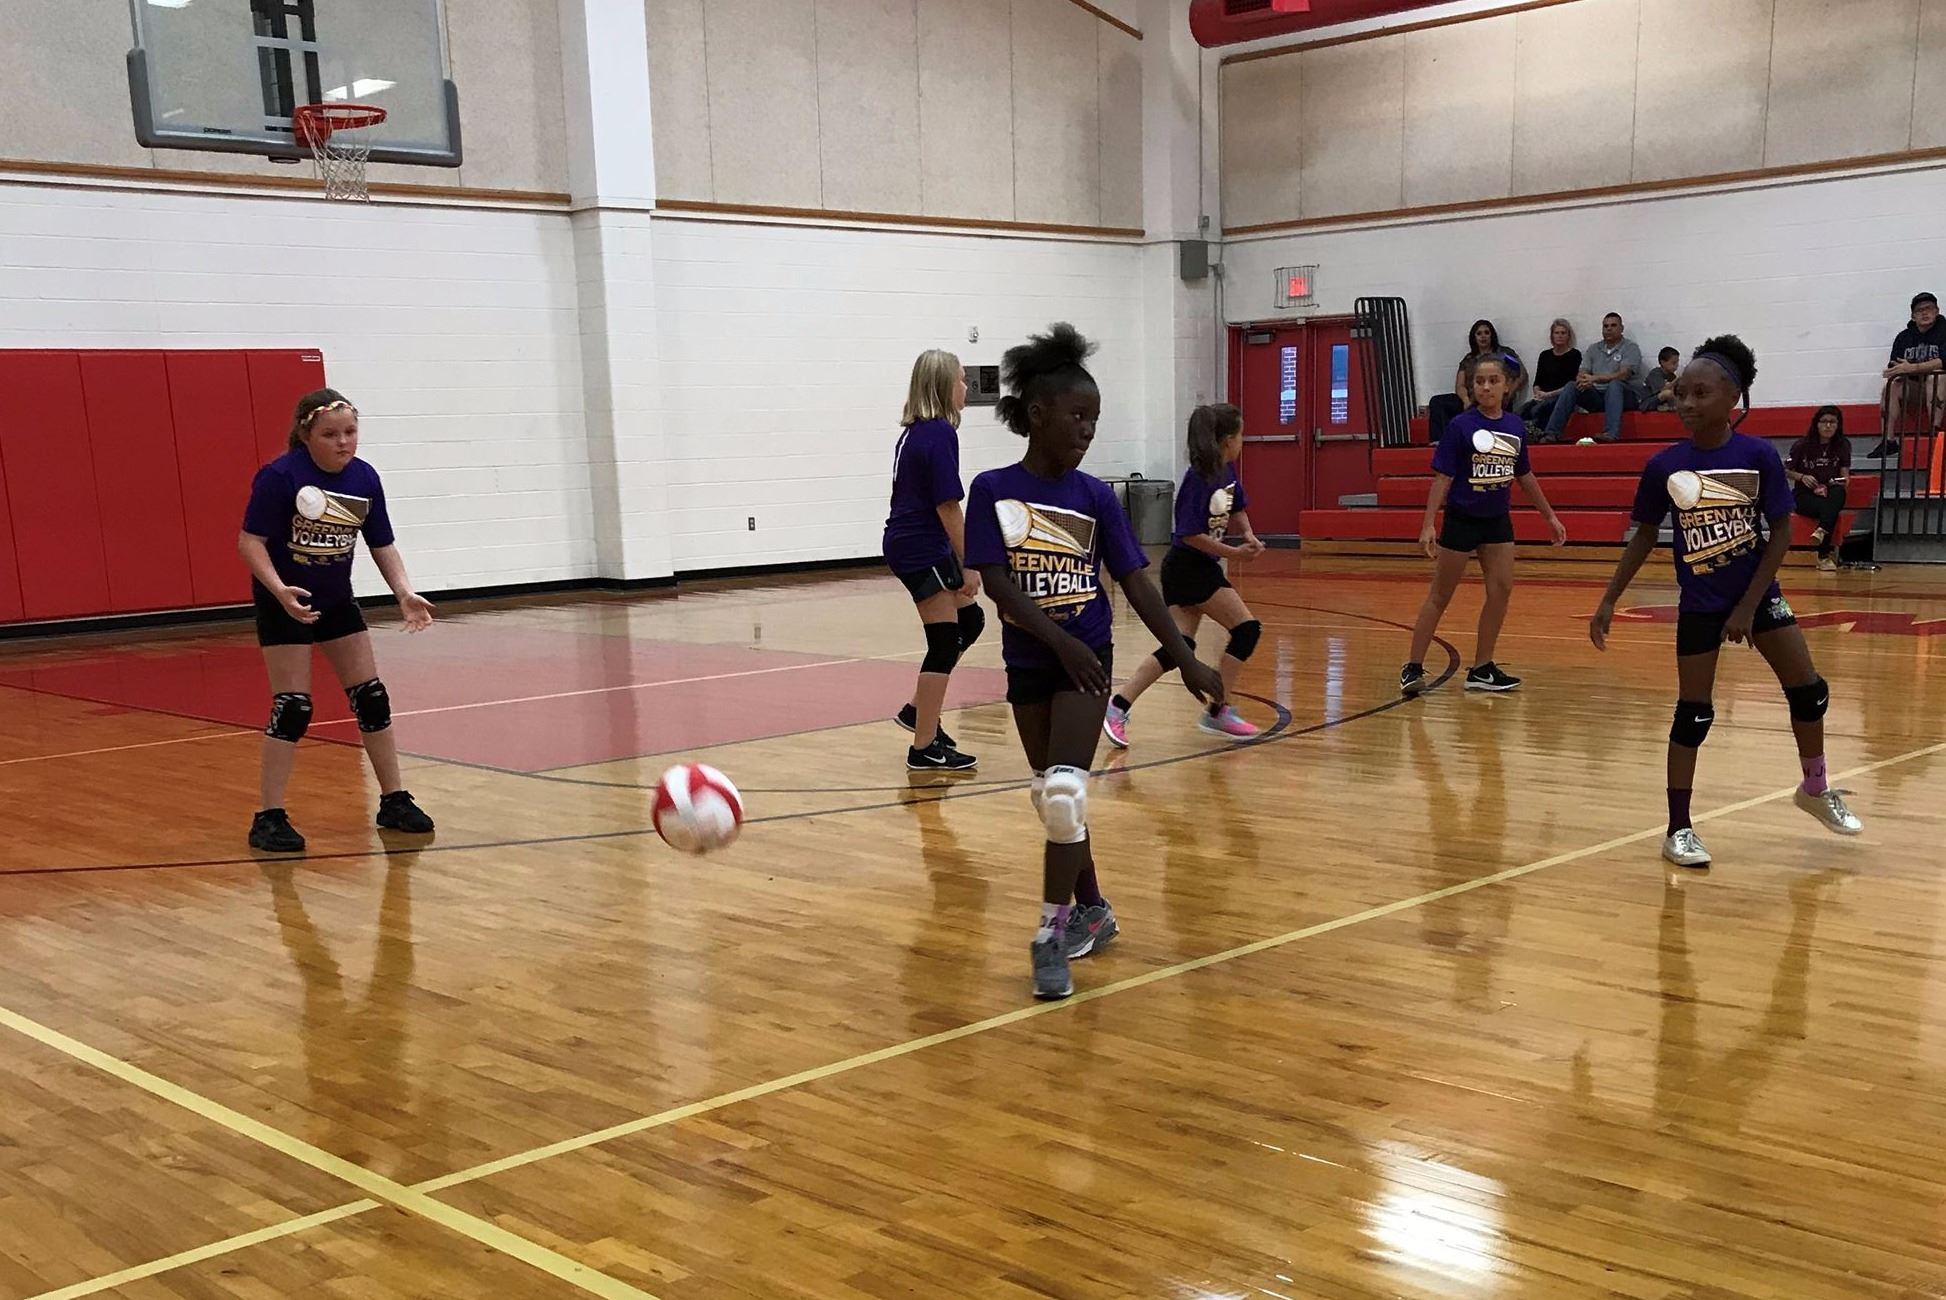 Girls playing volleyball wearing purple